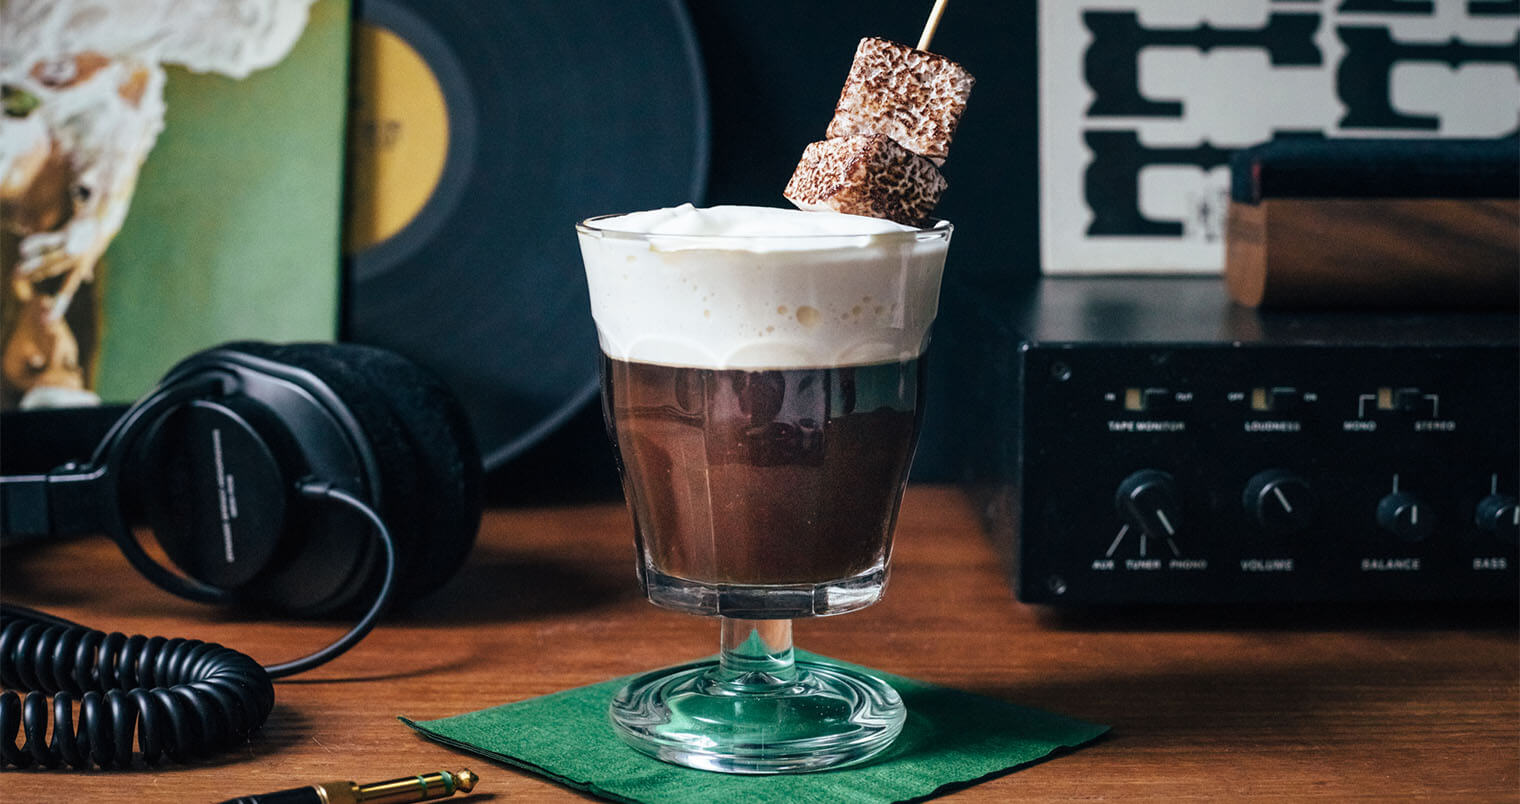 OTT Irish Coffee, featured image